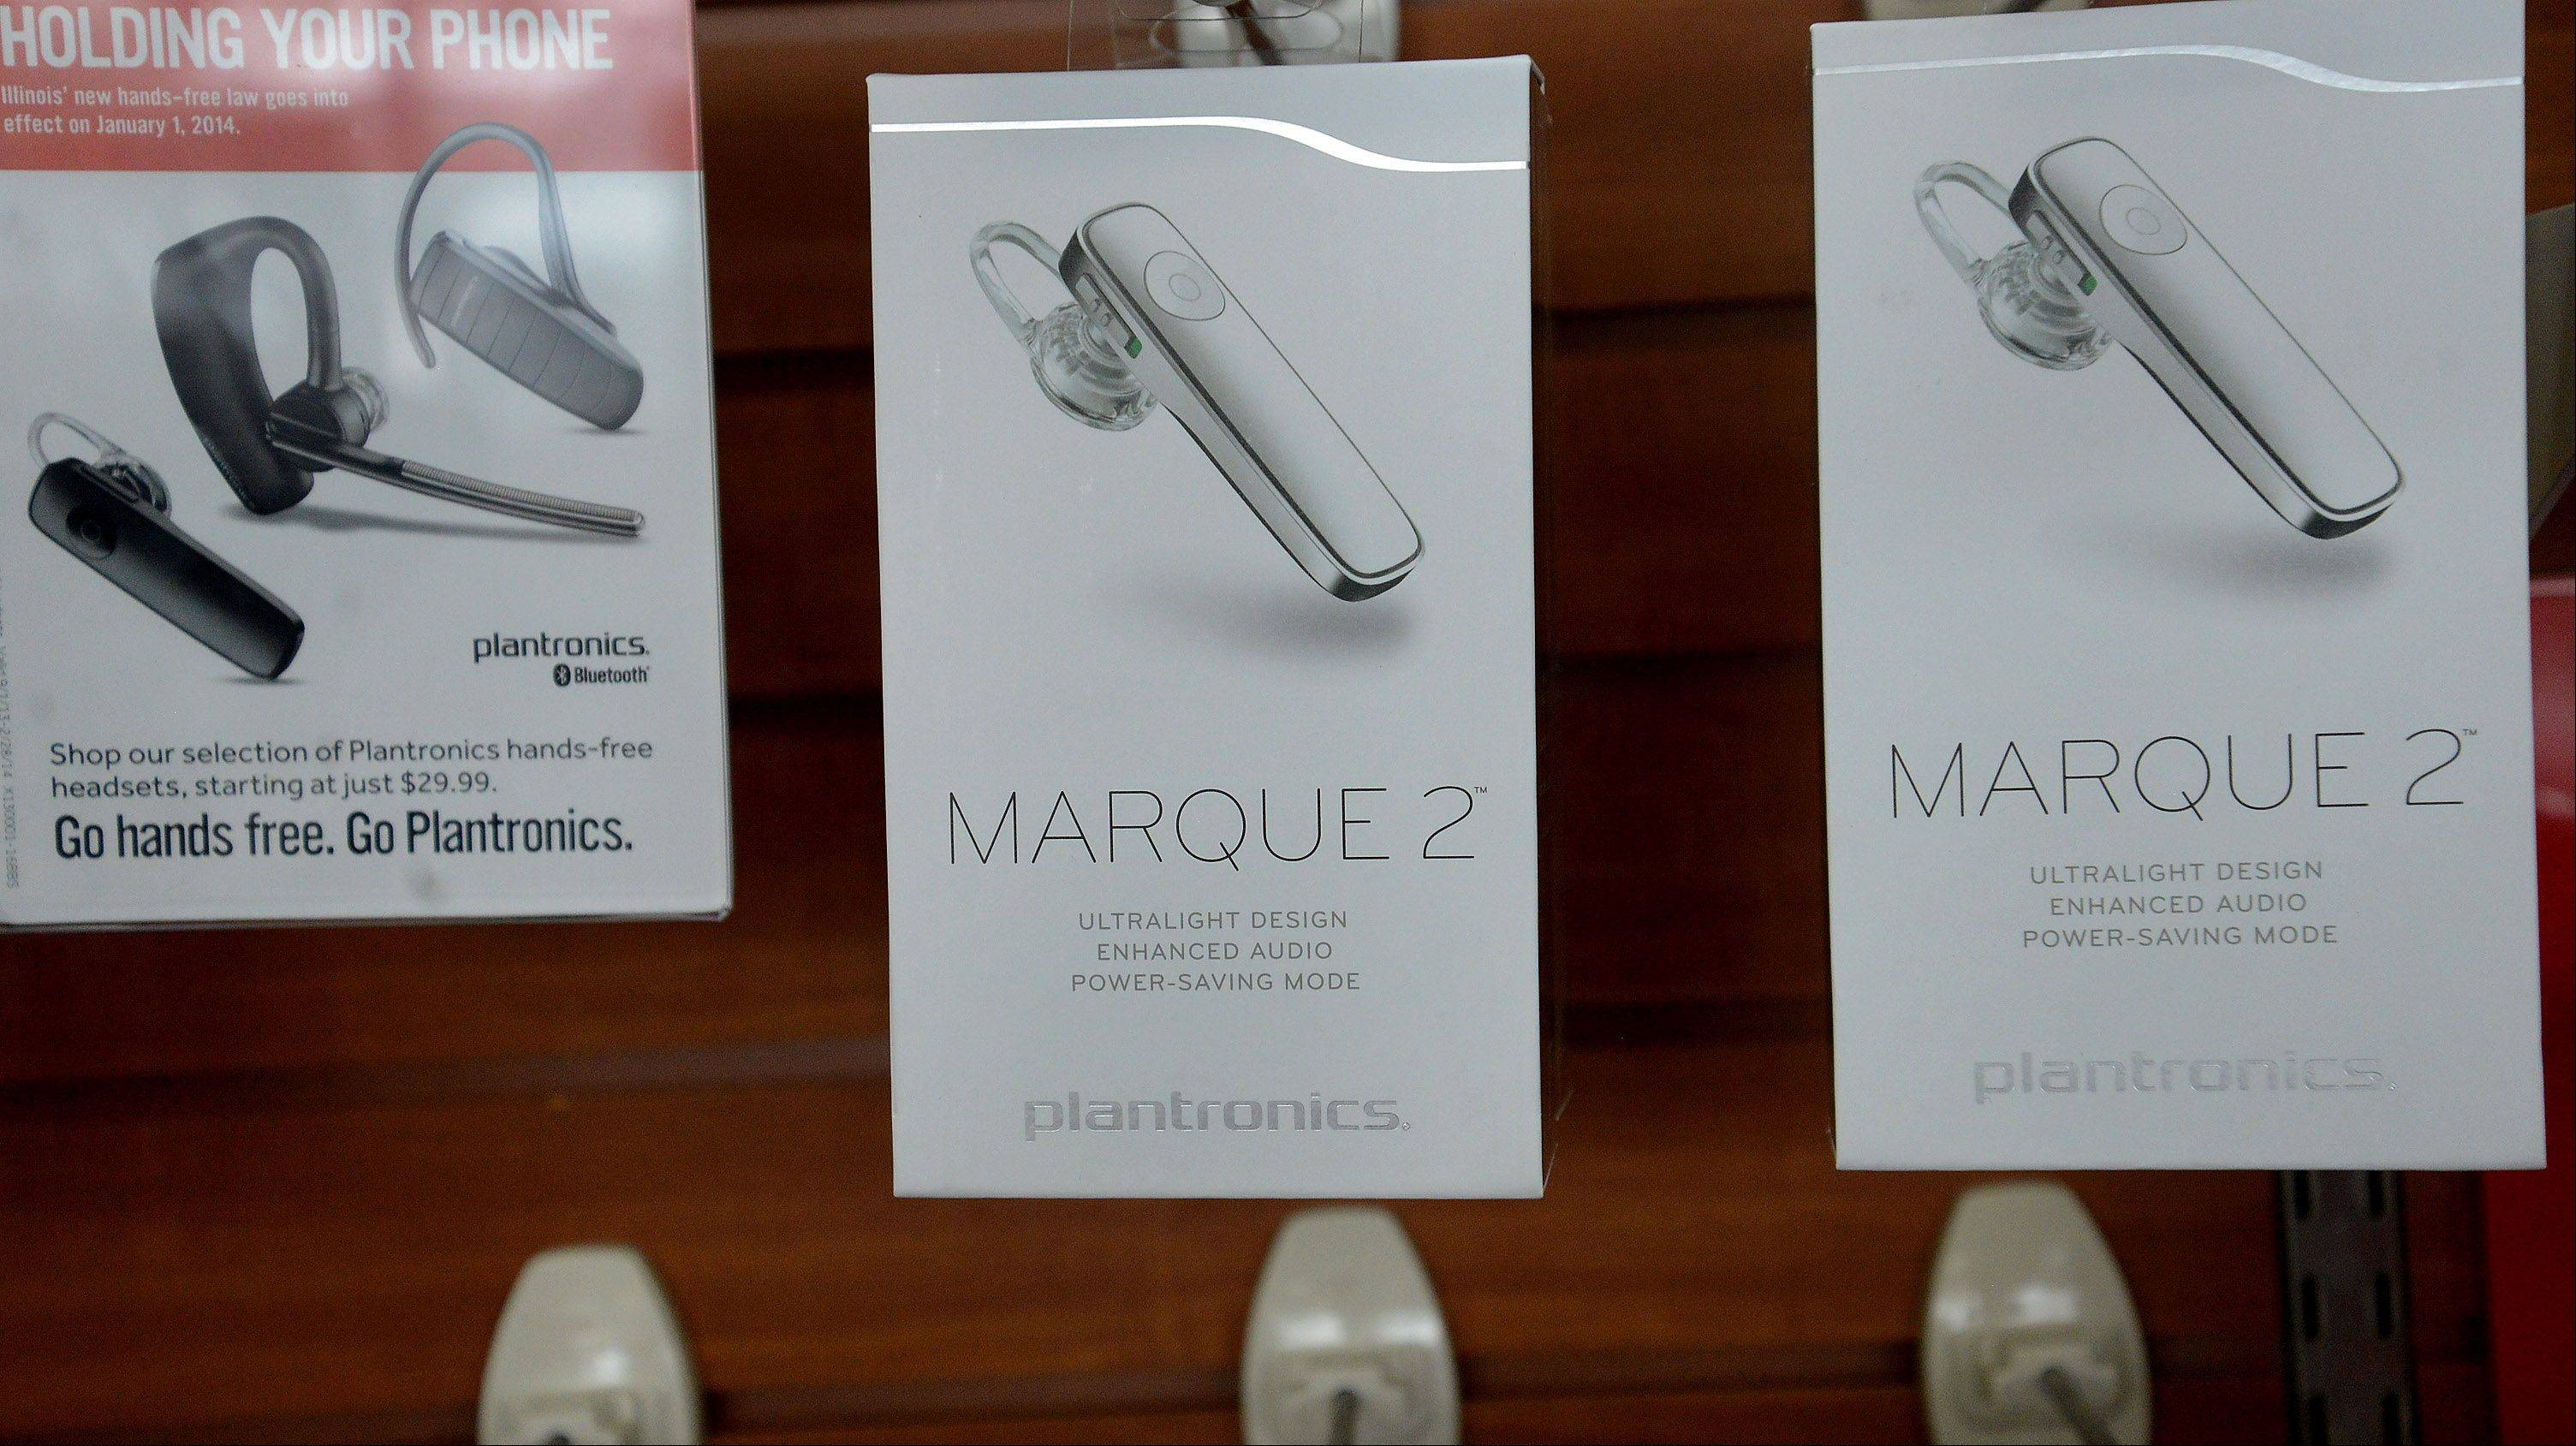 The Plantronics Marque 2 is a popular Bluetooth earphone device these days in suburban electronics and telecommunications stores. As of New Year's Day, talking on a cellphone behind the wheel without a hands-free device is forbidden in Illinois.